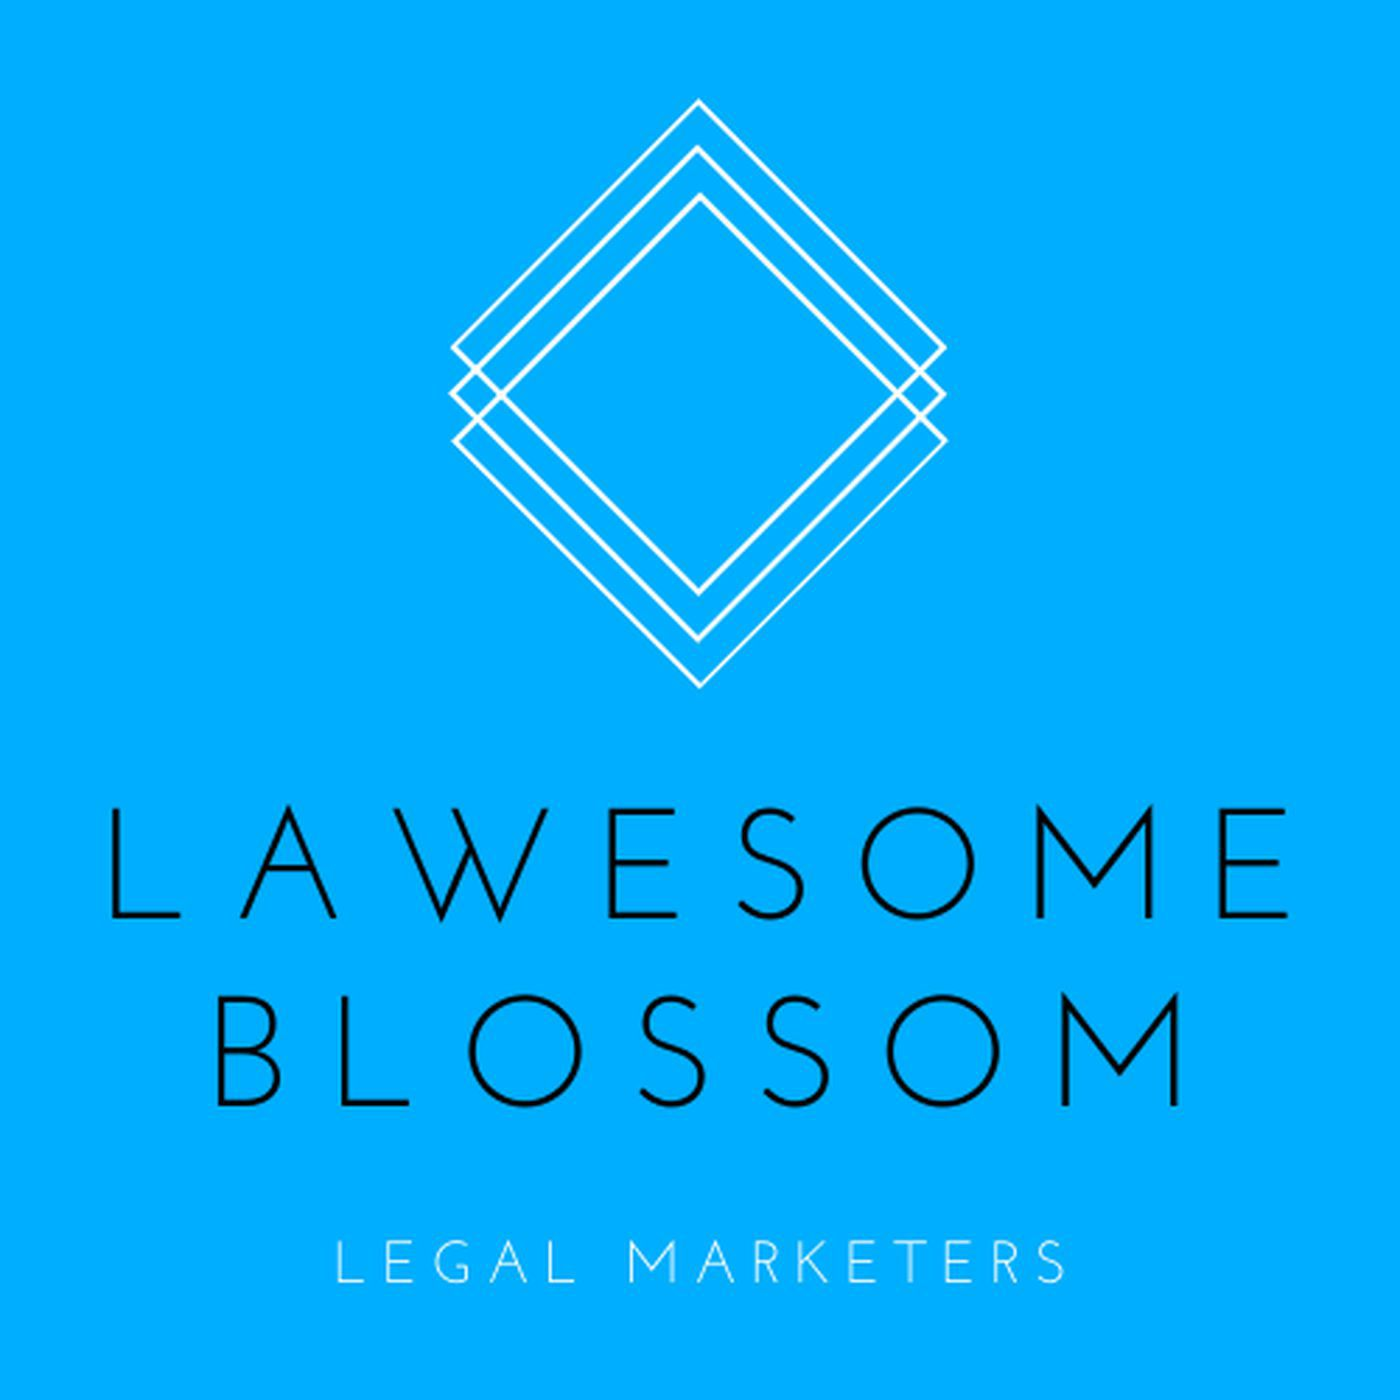 LAWESOME BLOSSOM